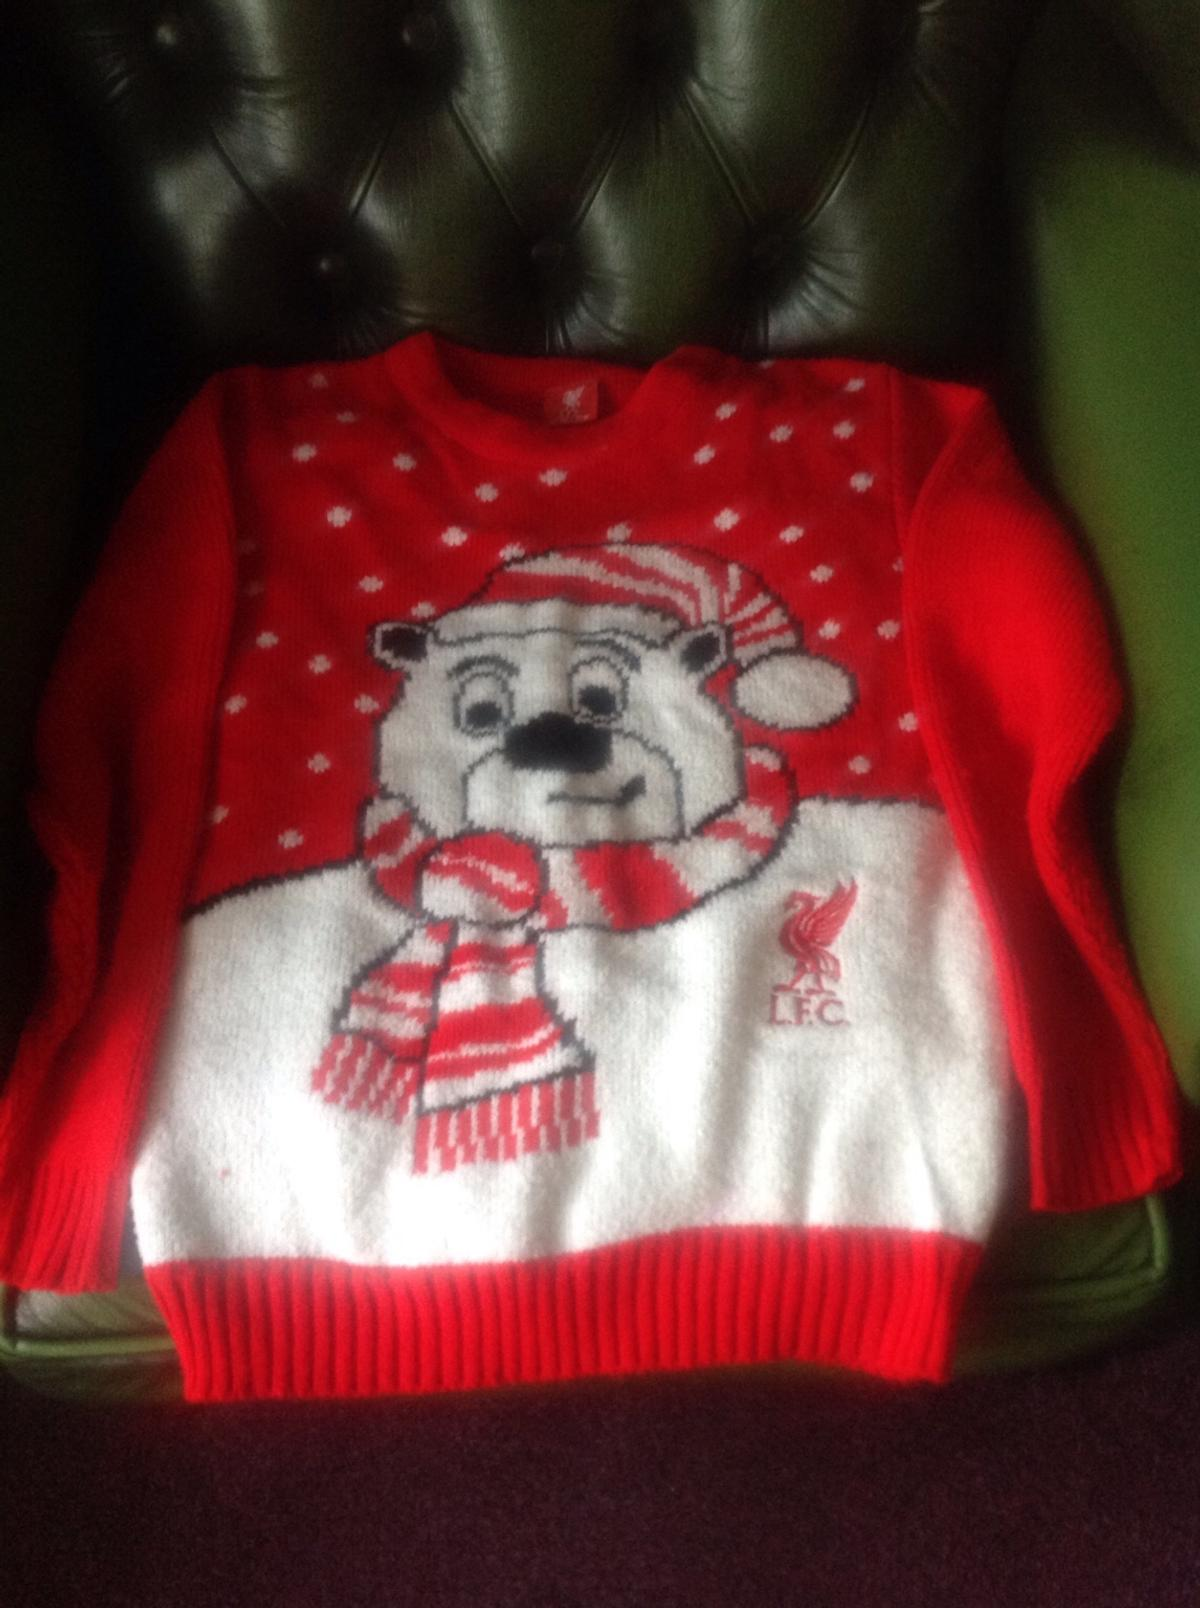 Liverpool Fc Christmas Jumper In Ch8 Walwen For 10 00 For Sale Shpock